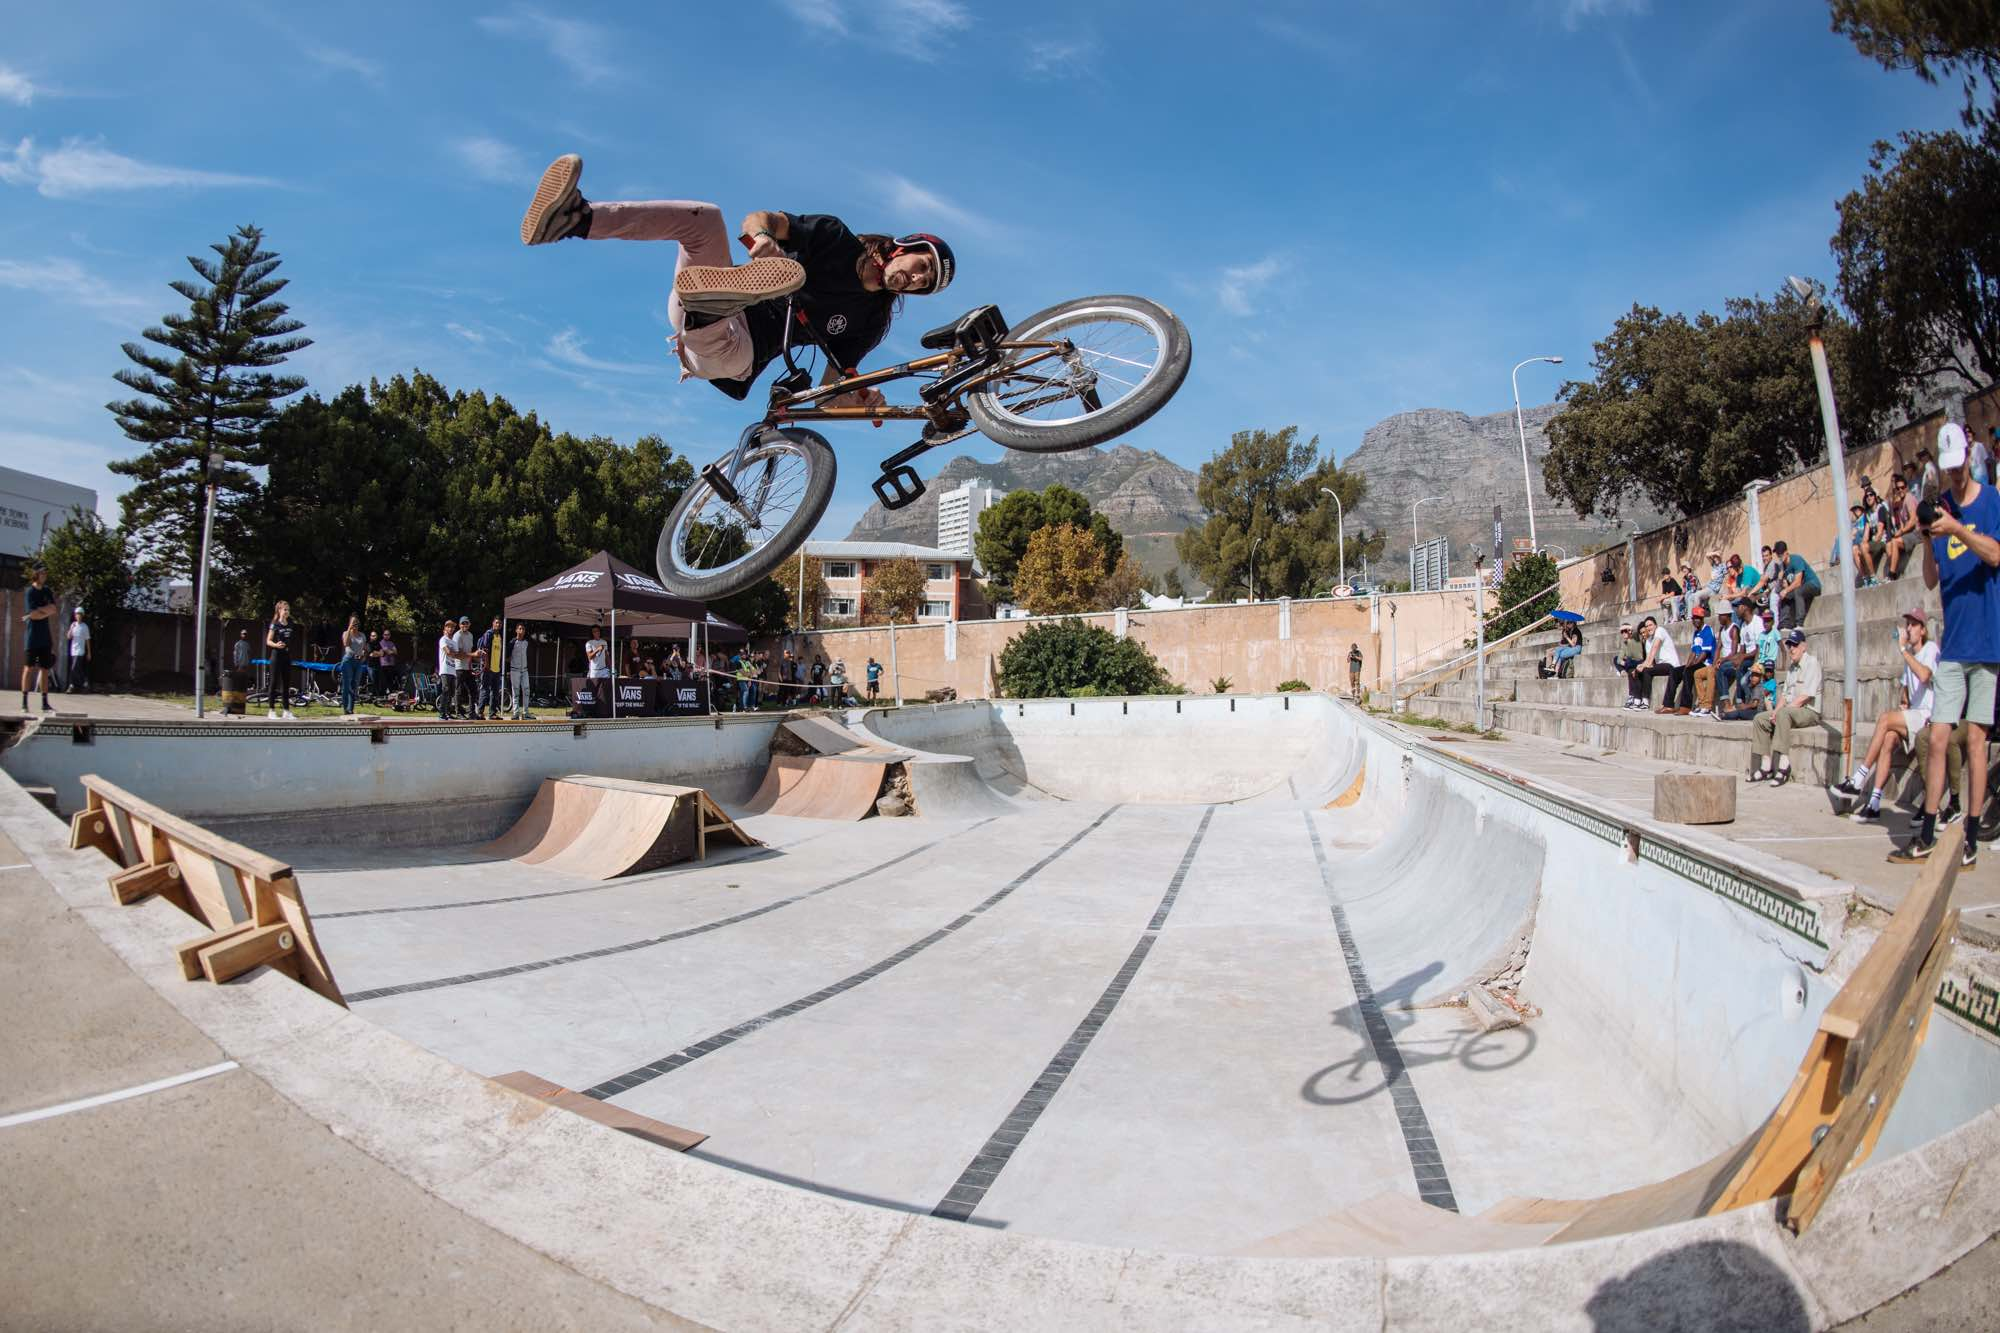 Vincent Leygonie competing in the Waffle Jam 2019 BMX contest